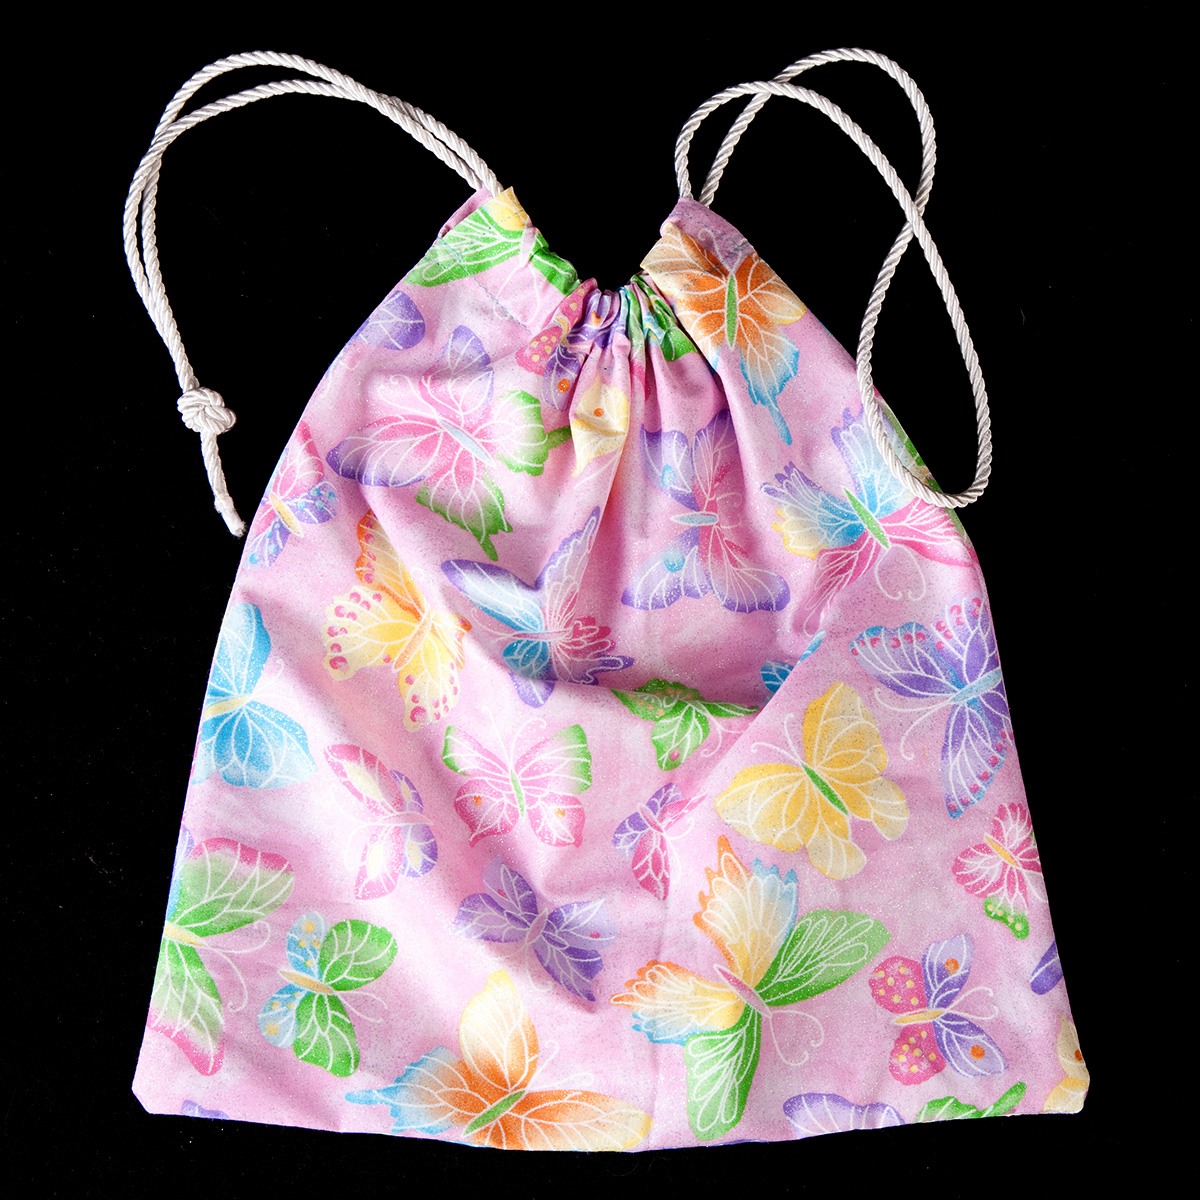 A light purple butterfly print Grip Bag, with a white drawstring cord. It is against a black background.